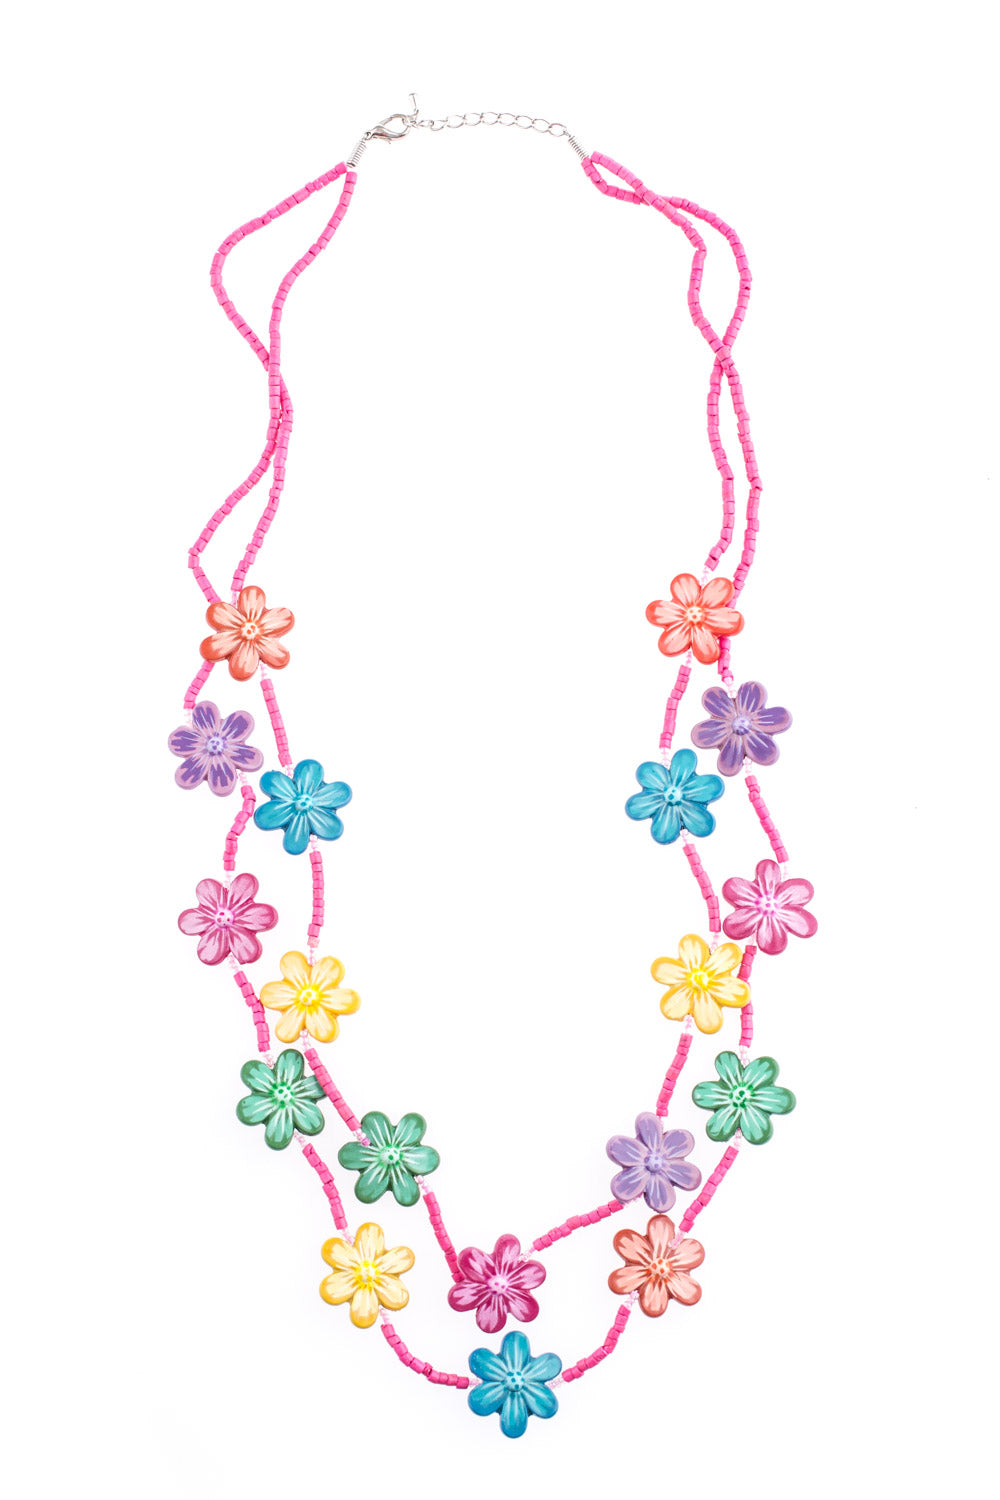 Type 1 Pretty Petals Necklace